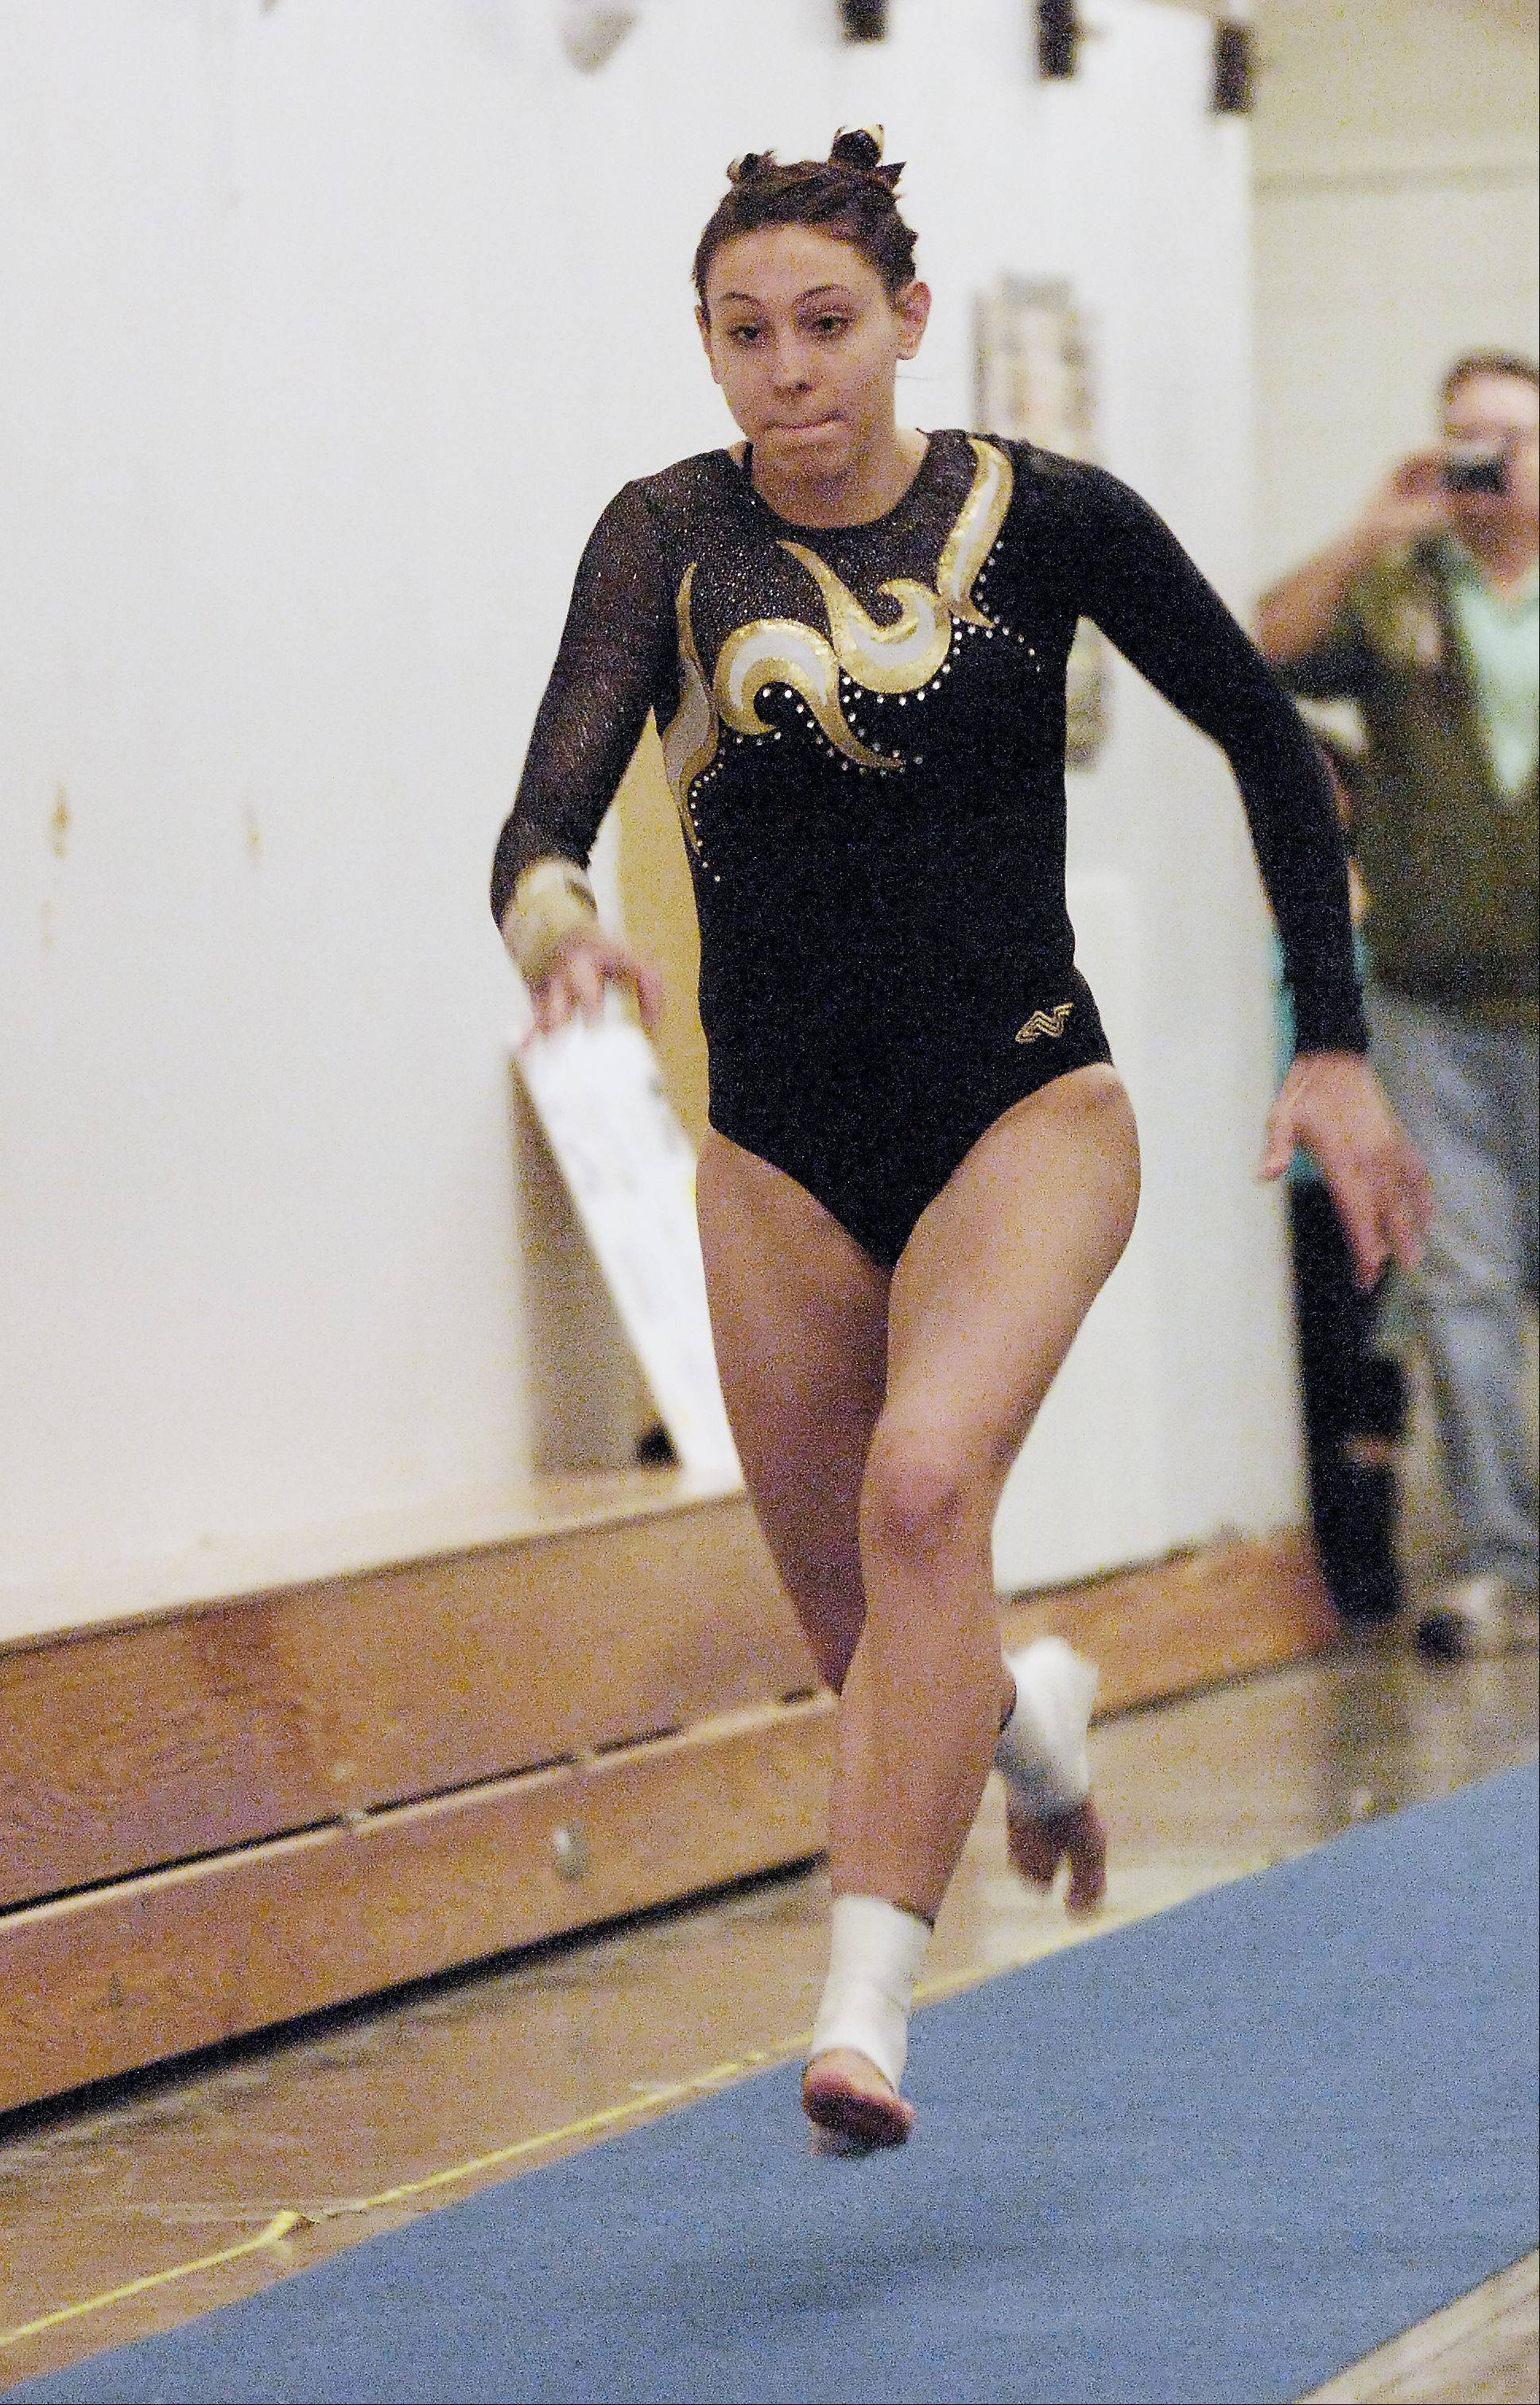 Mariah Matesi of Glenbard North performs on vault during Thursday's girls gymnastics meet against Naperville North.